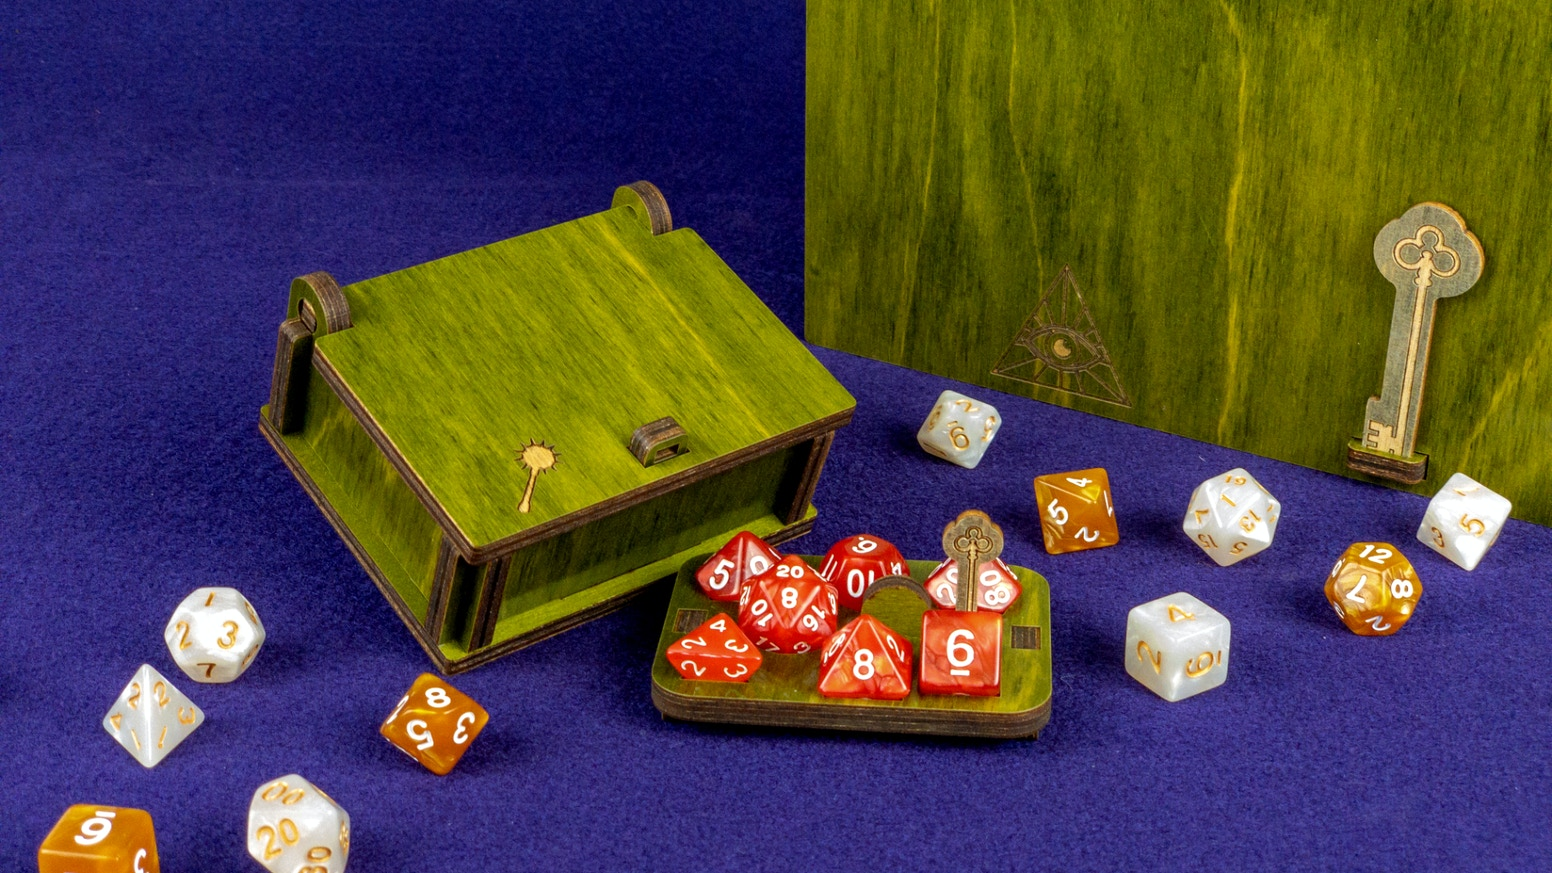 A modular system for the organization, transportation and display of RPG dice sets. Get a single Lockbox or a set with storage Bank.